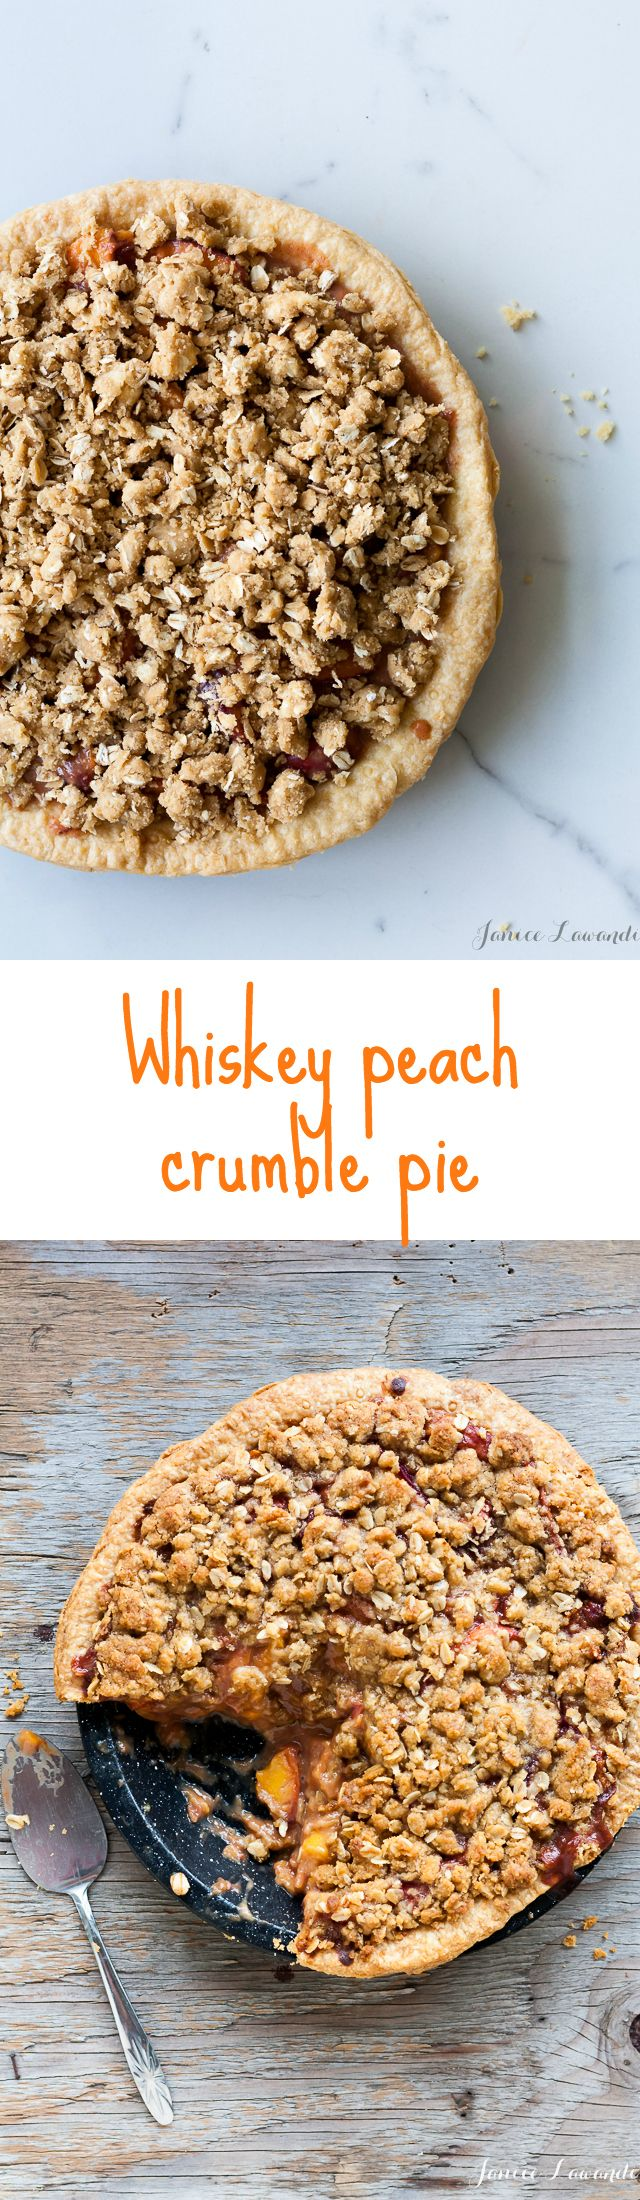 homemade Peach pie recipe made with whiskey and crumble topping